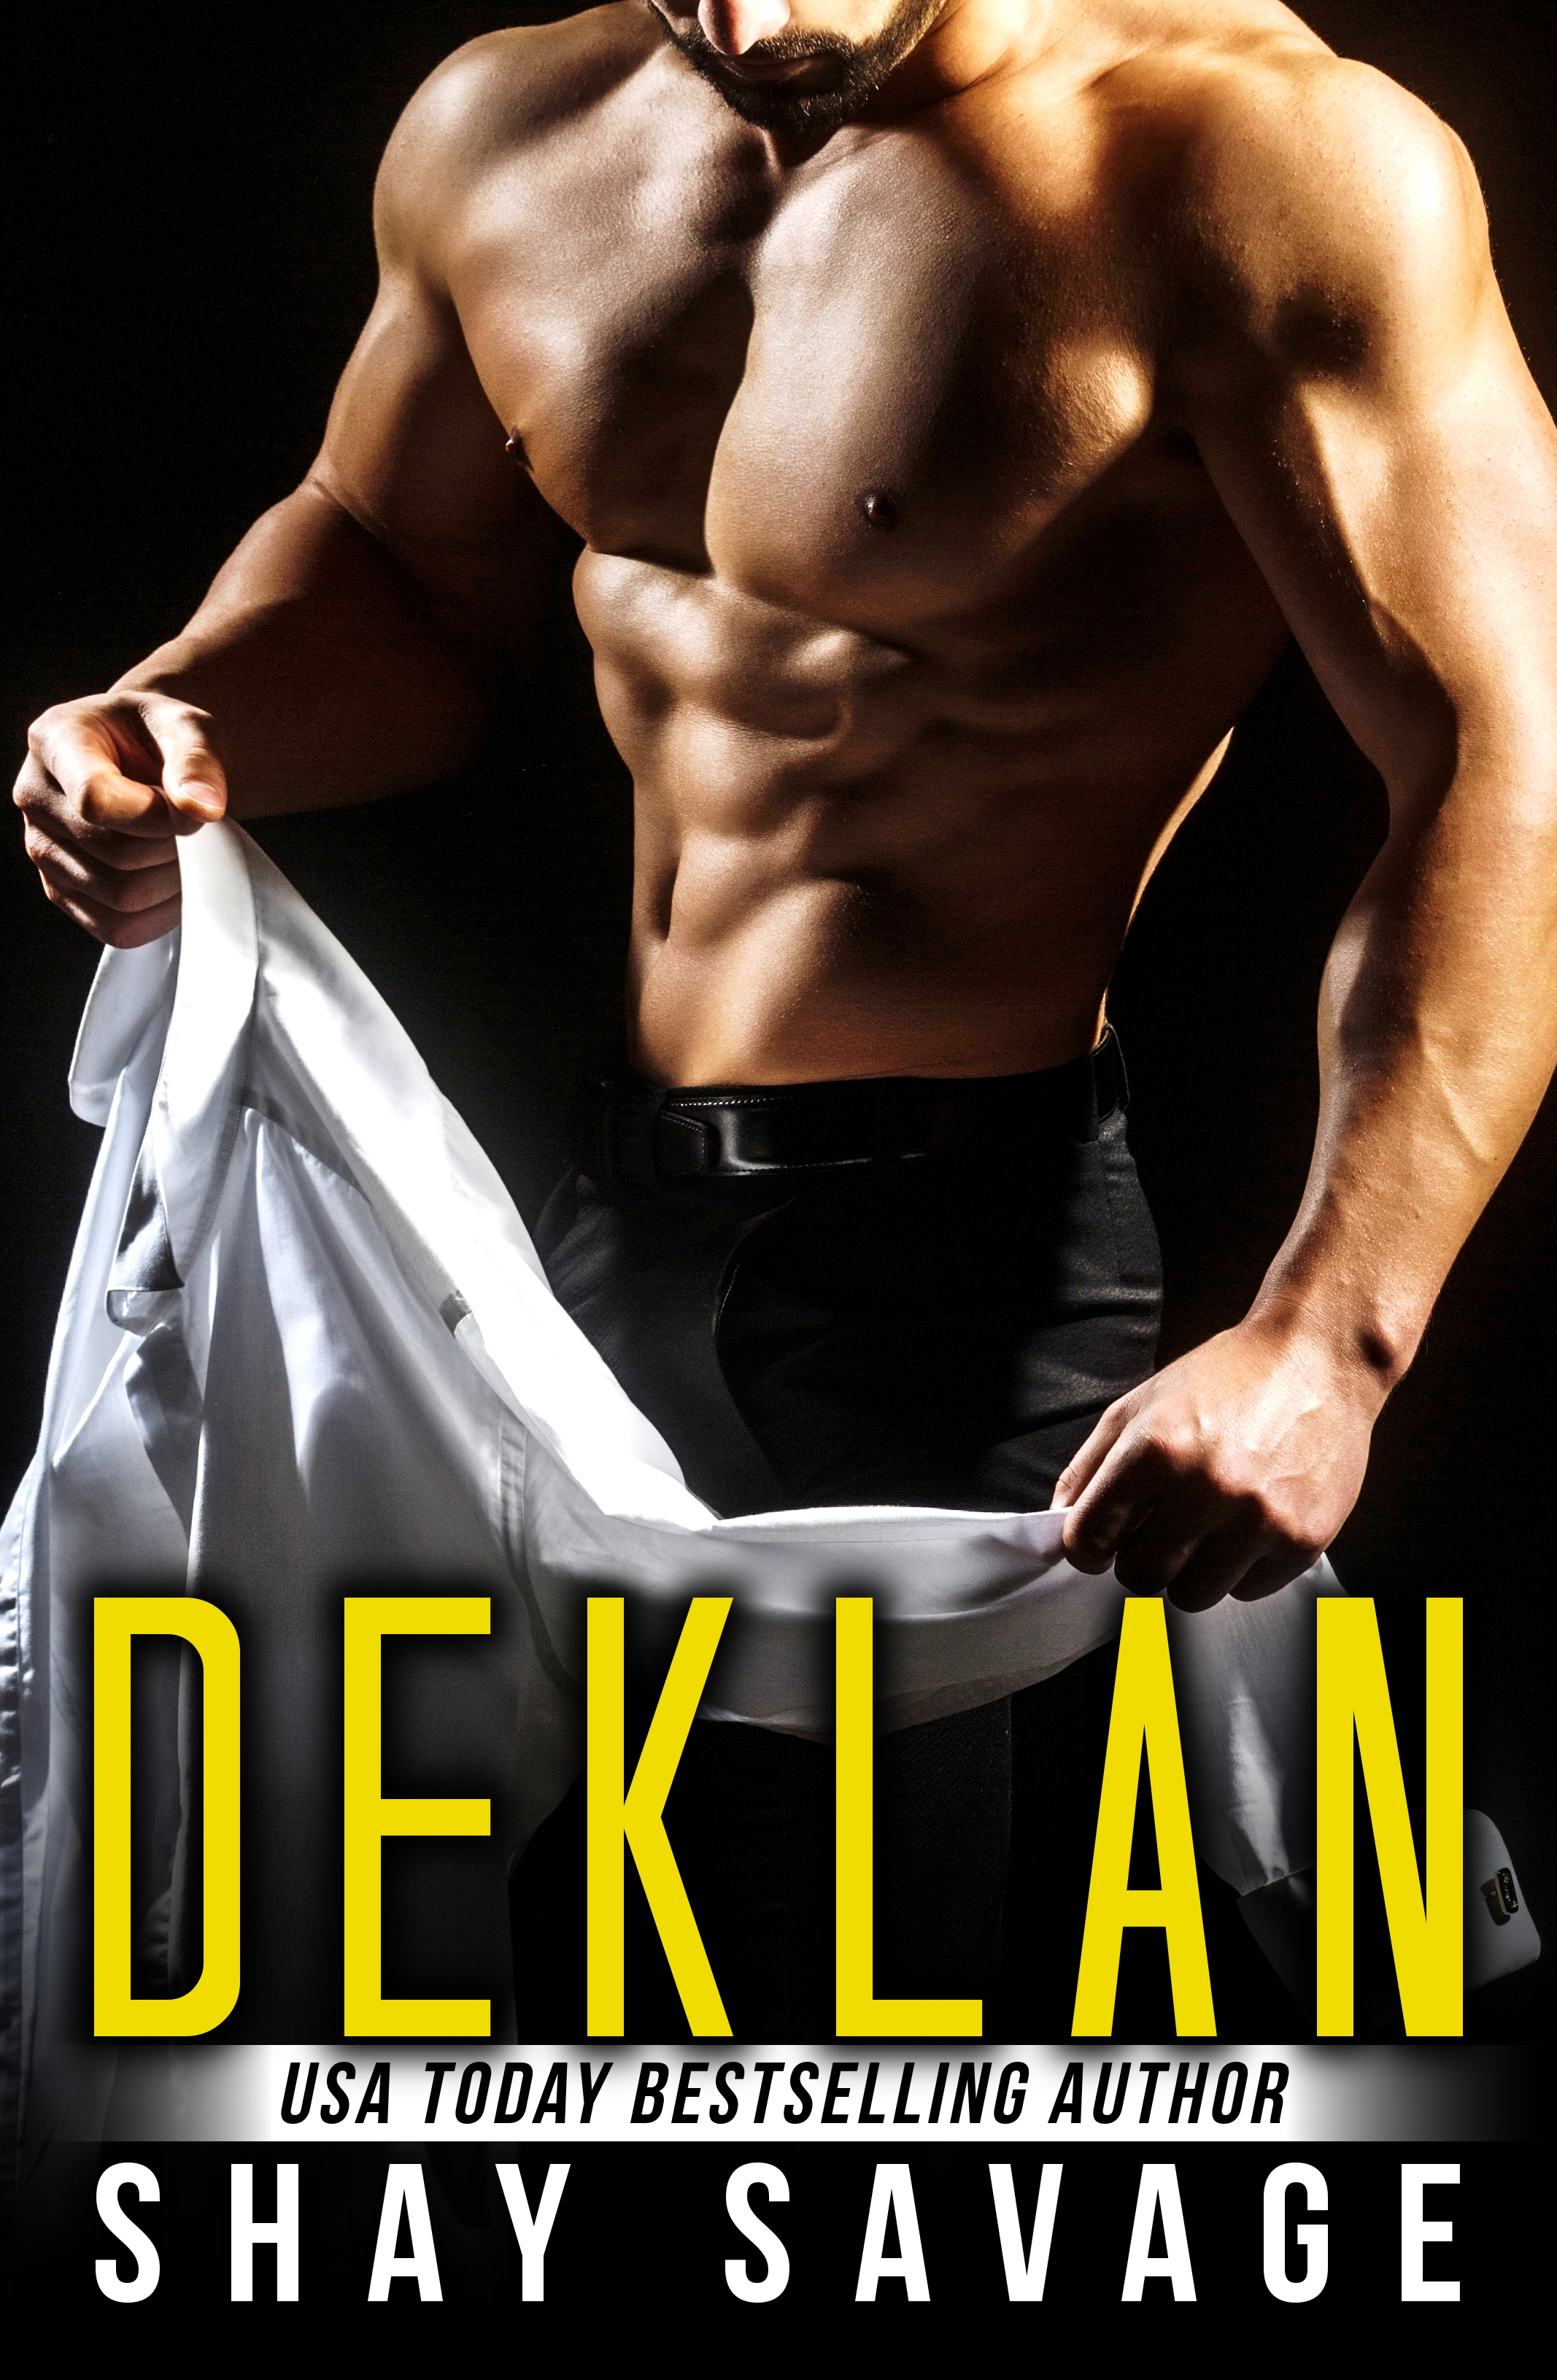 Deklan by Shay Savage